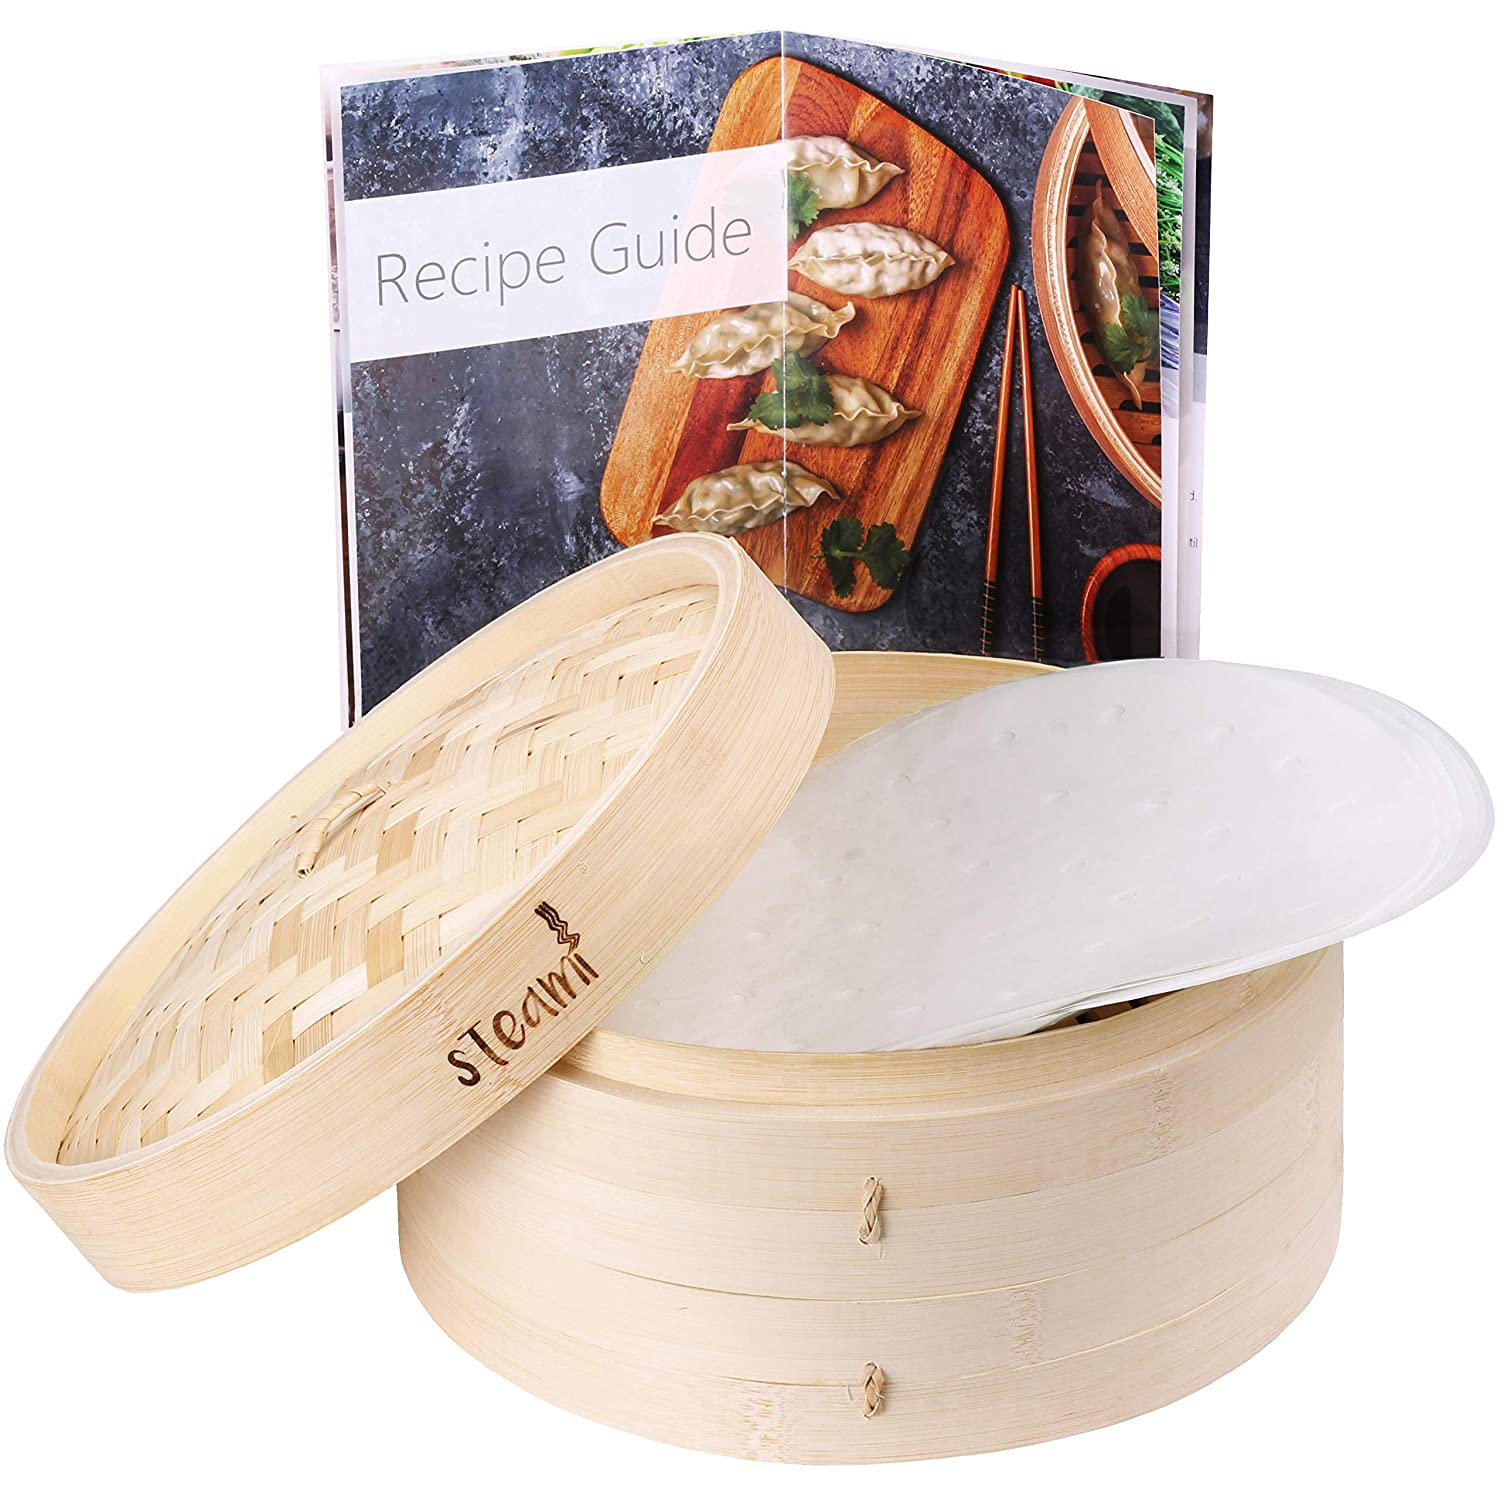 Steami - Bamboo Steamer (10 inch) with Liners and Recipe Guide